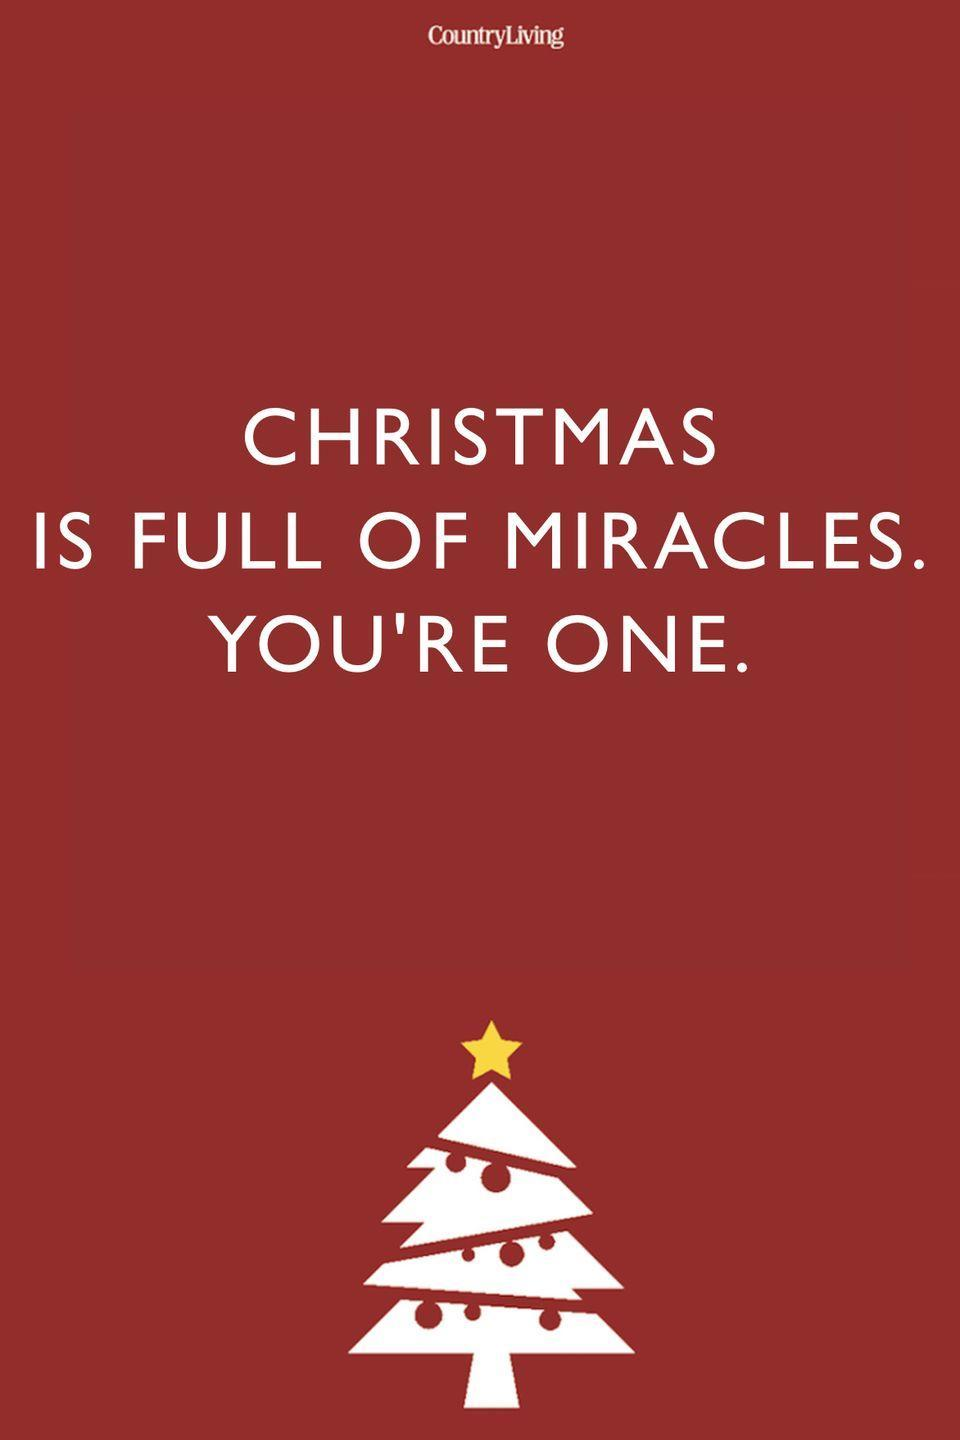 <p>Christmas is full of miracles. You're one.</p>